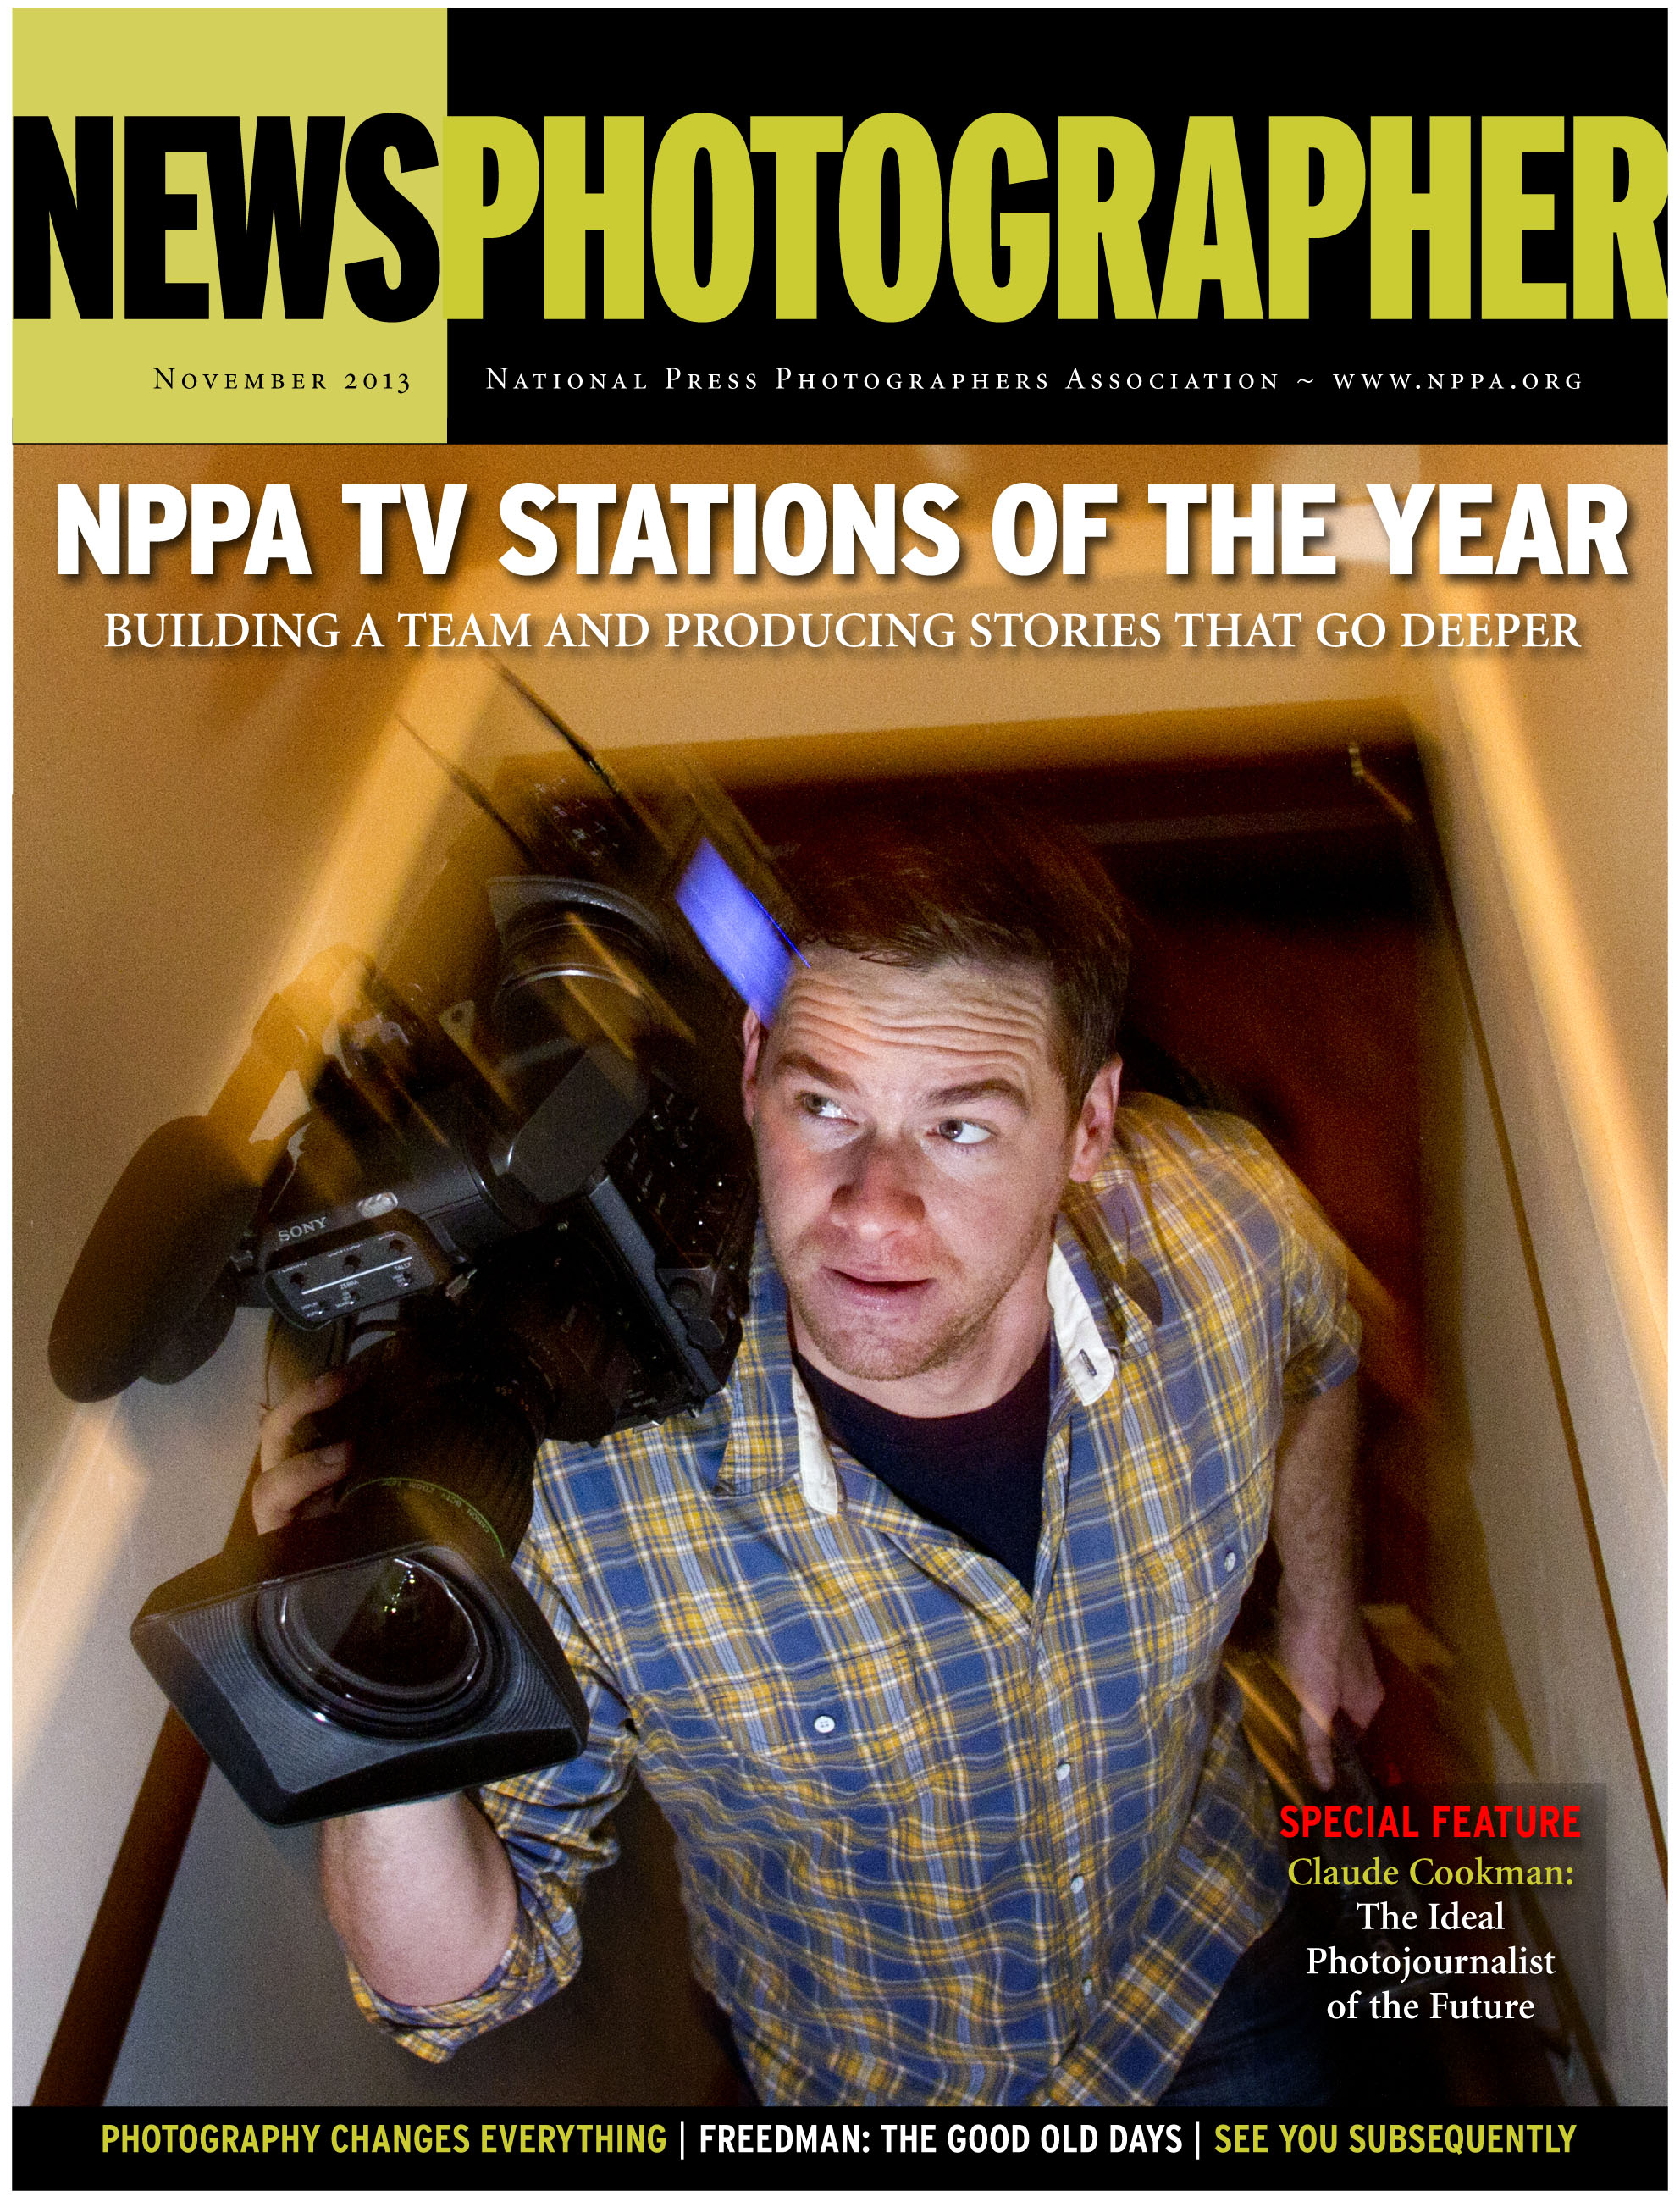 """The Editorial """"Open Up The Oval"""" was published in the November 2013 issue of News Photographer magazine."""